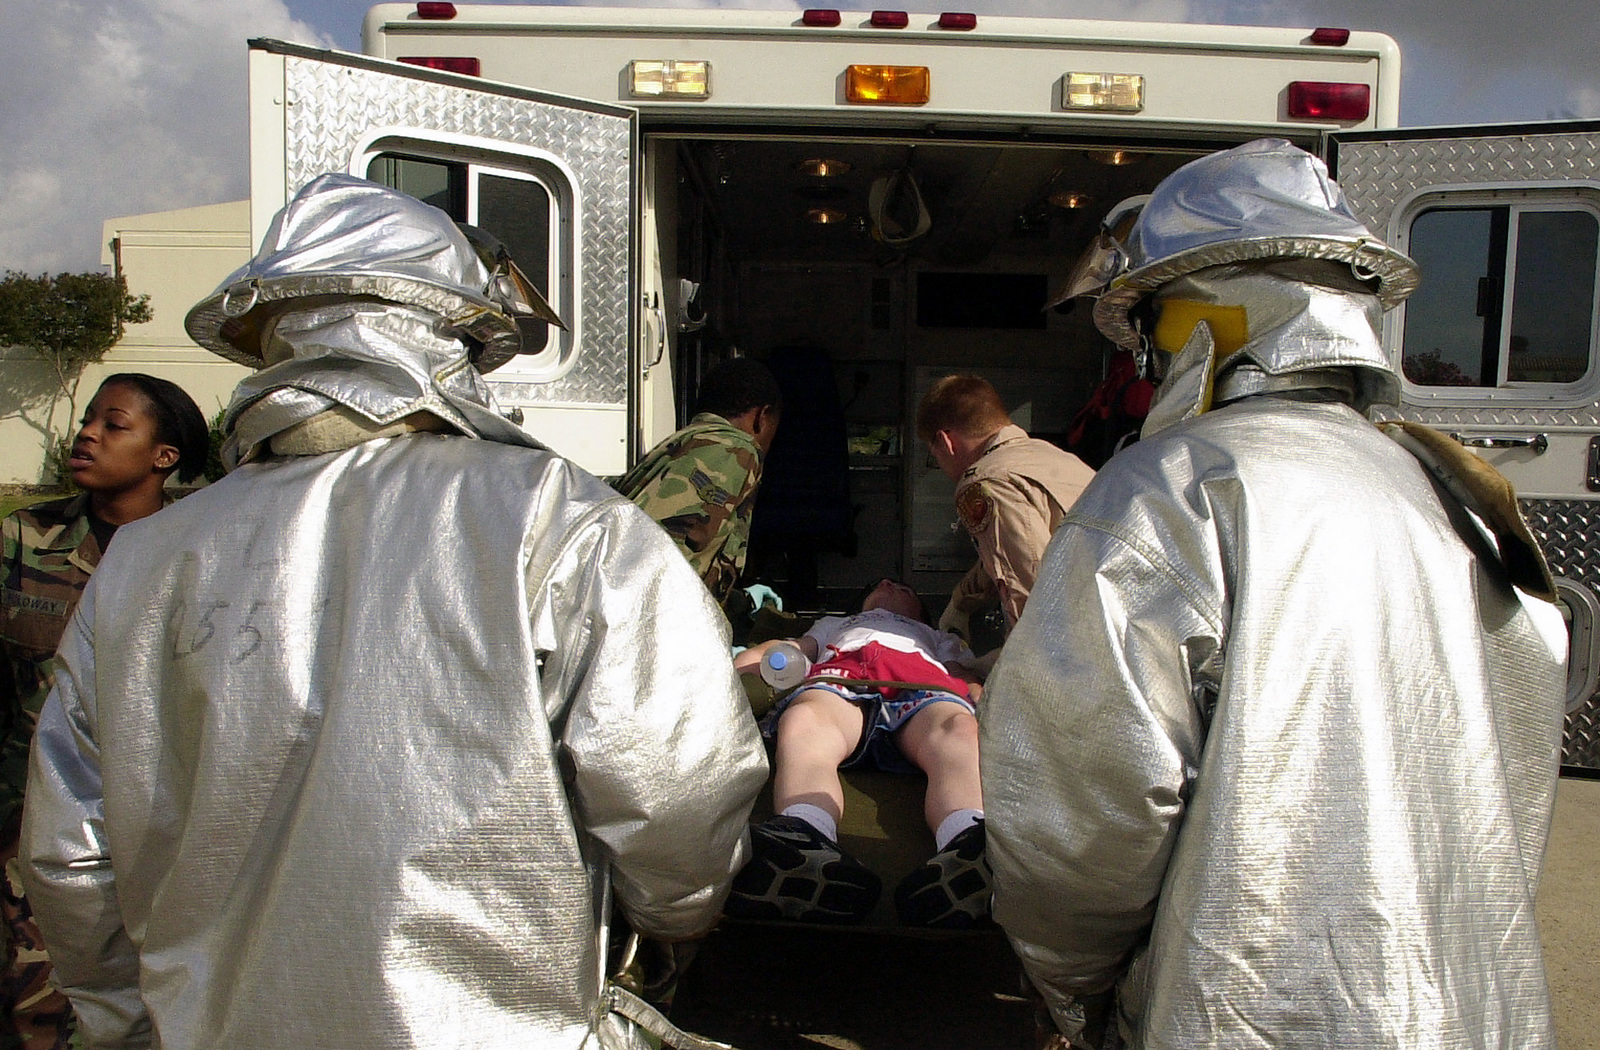 Civilian Firefighters and US Air Force (USAF) Medical personnel load a simulated earthquake victim into an ambulance, during a natural disaster mass casualty exercise conducted at Incirlik Air Base (AB), Turkey